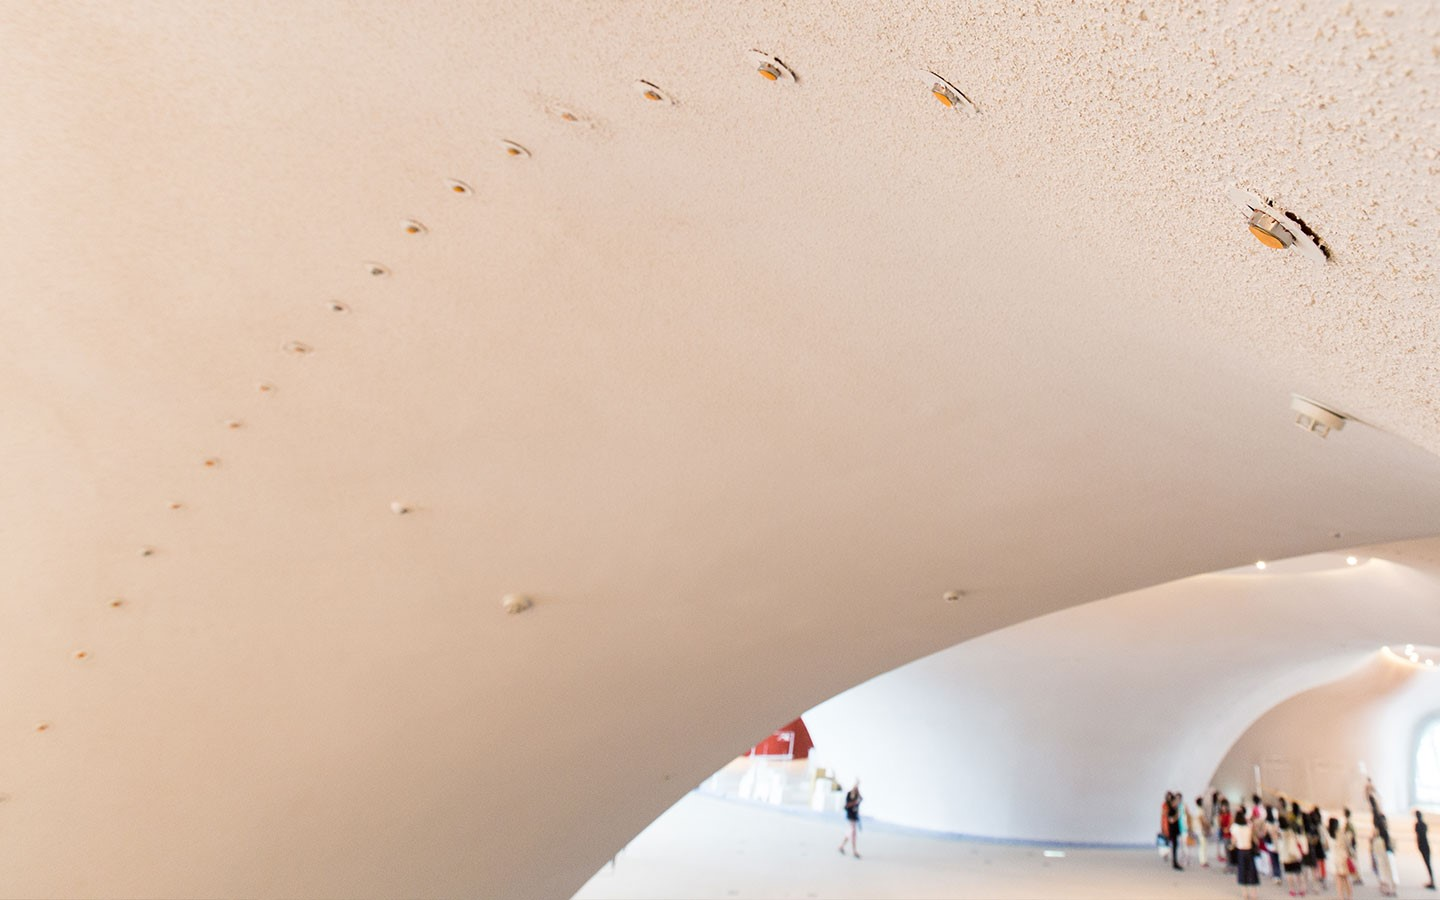 National Taichung Theater by Toyo Ito & Associates: A Cave of Sound - Sheet8